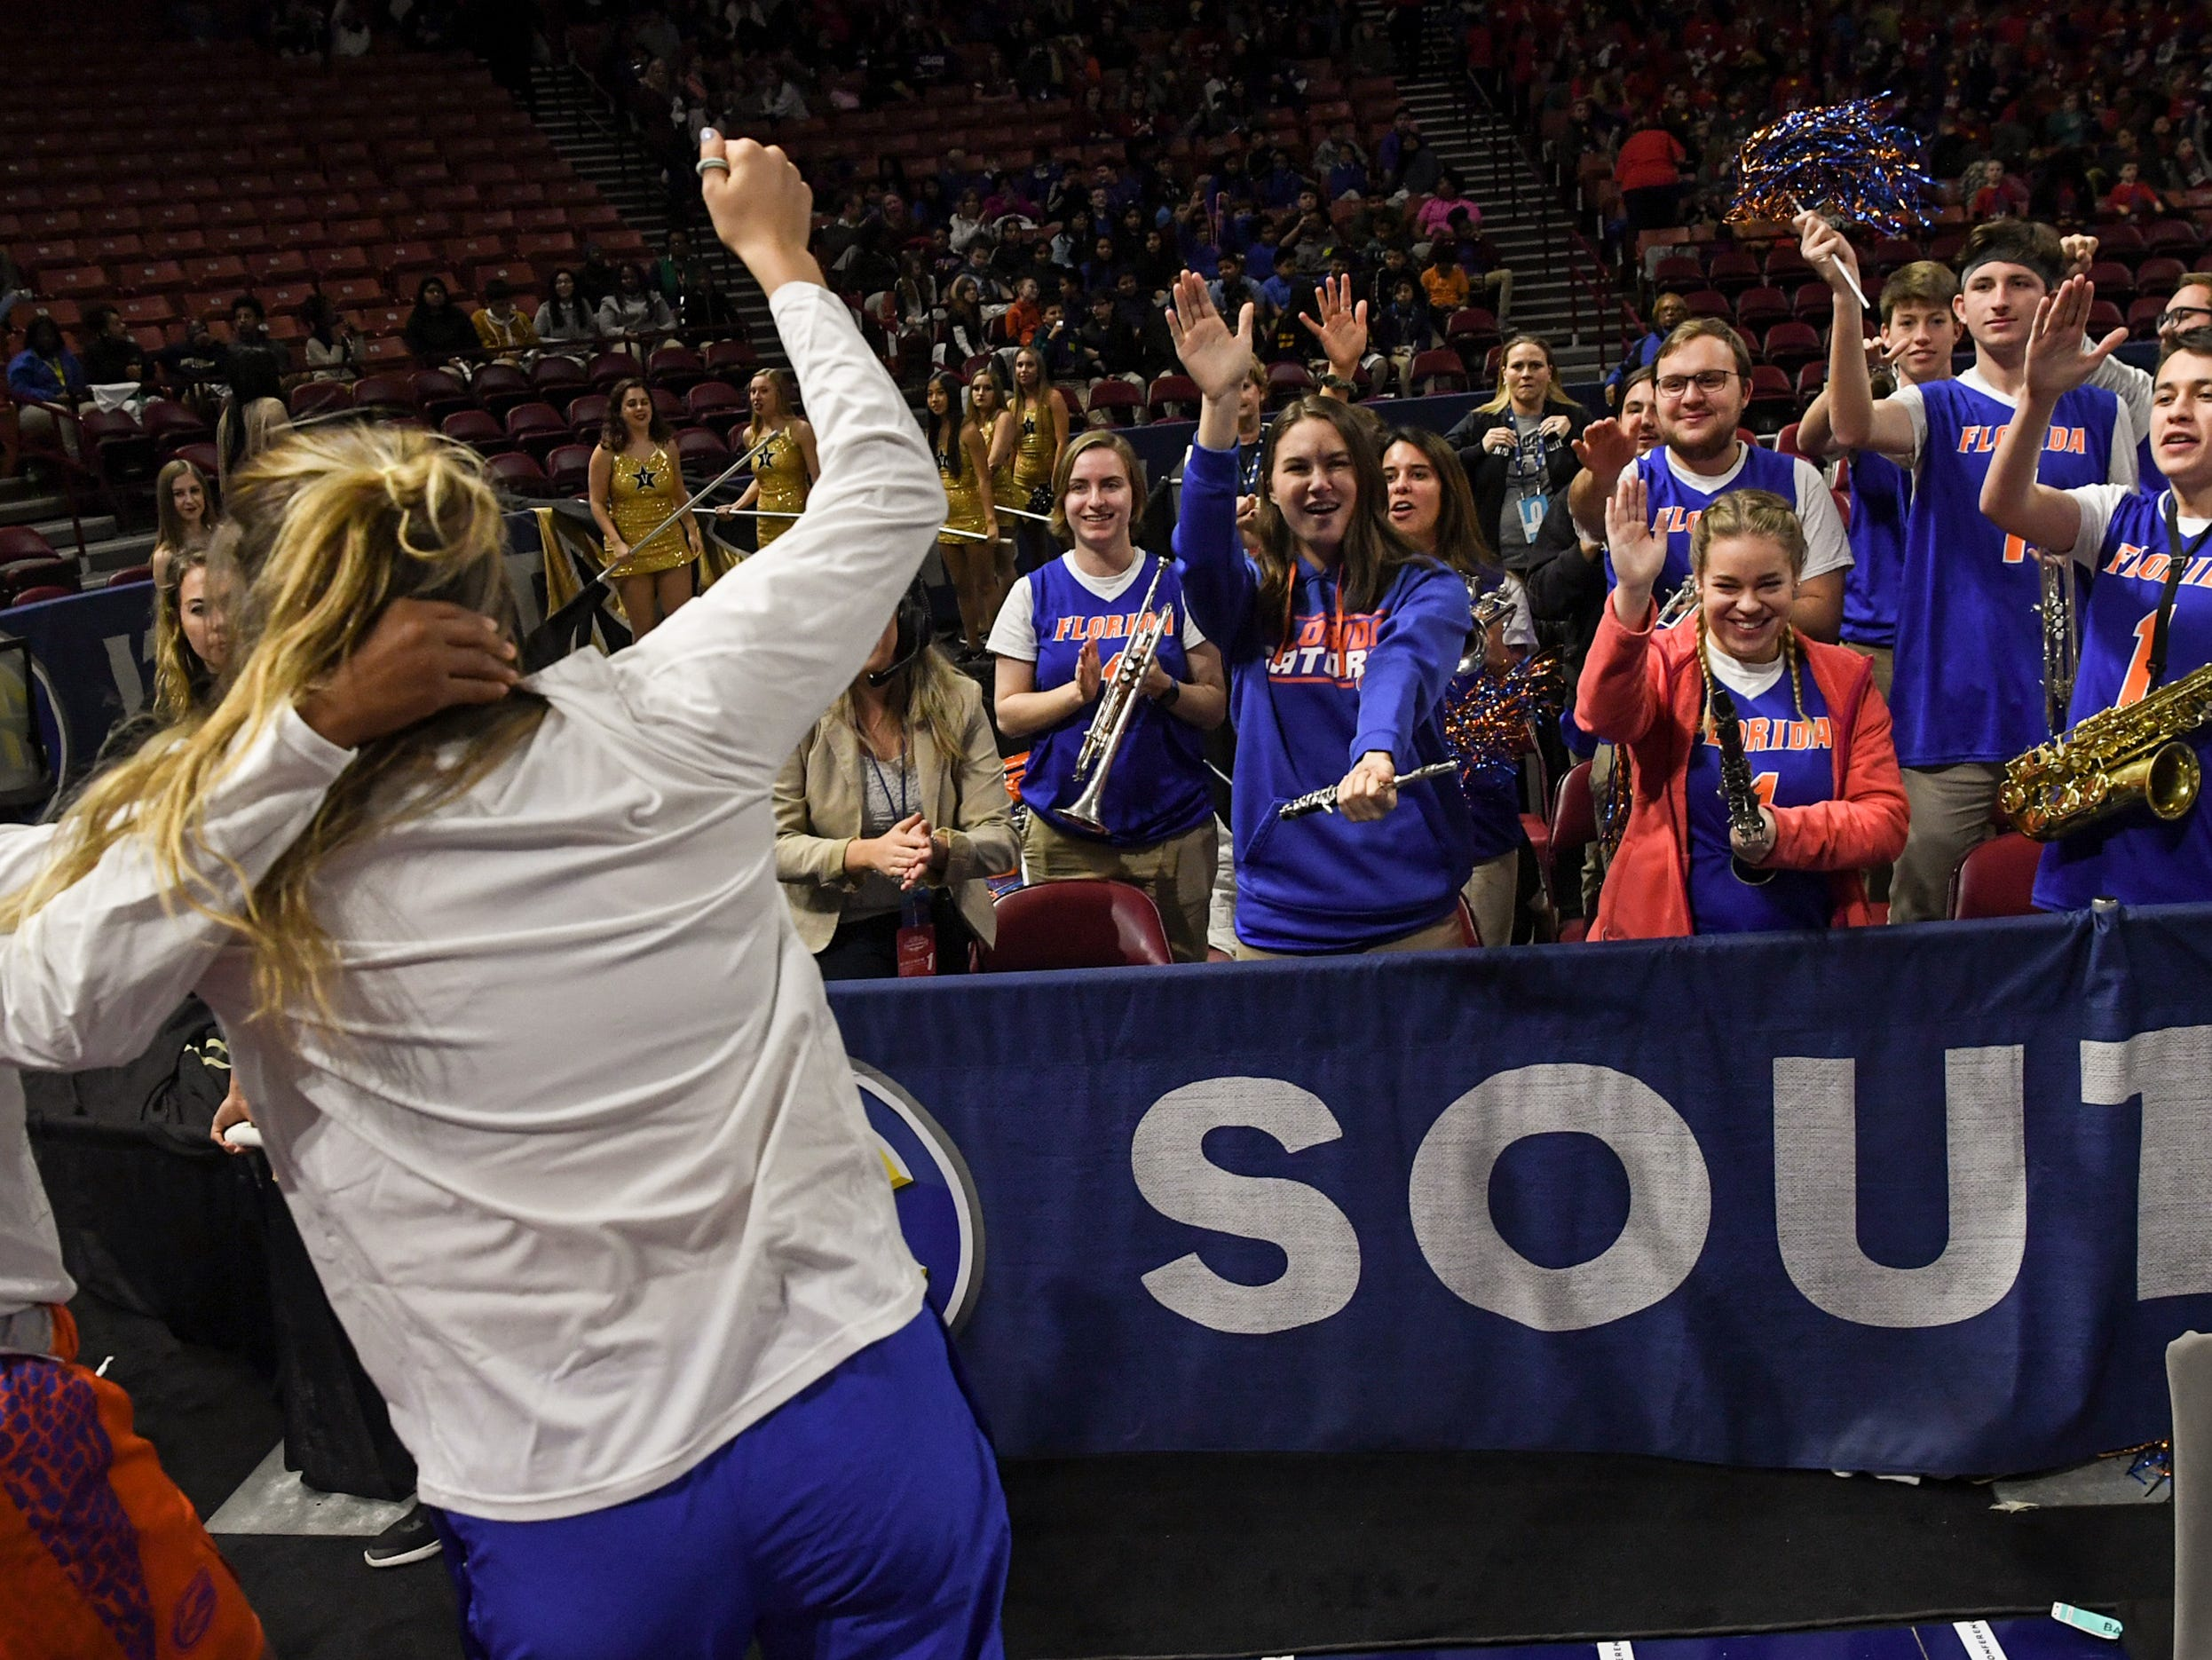 Florida band play celebrate the win over Ole Miss during the Southeastern Conference Women's Tournament game at Bon Secour Wellness Arena in Greenville Wednesday, March 6, 2019.